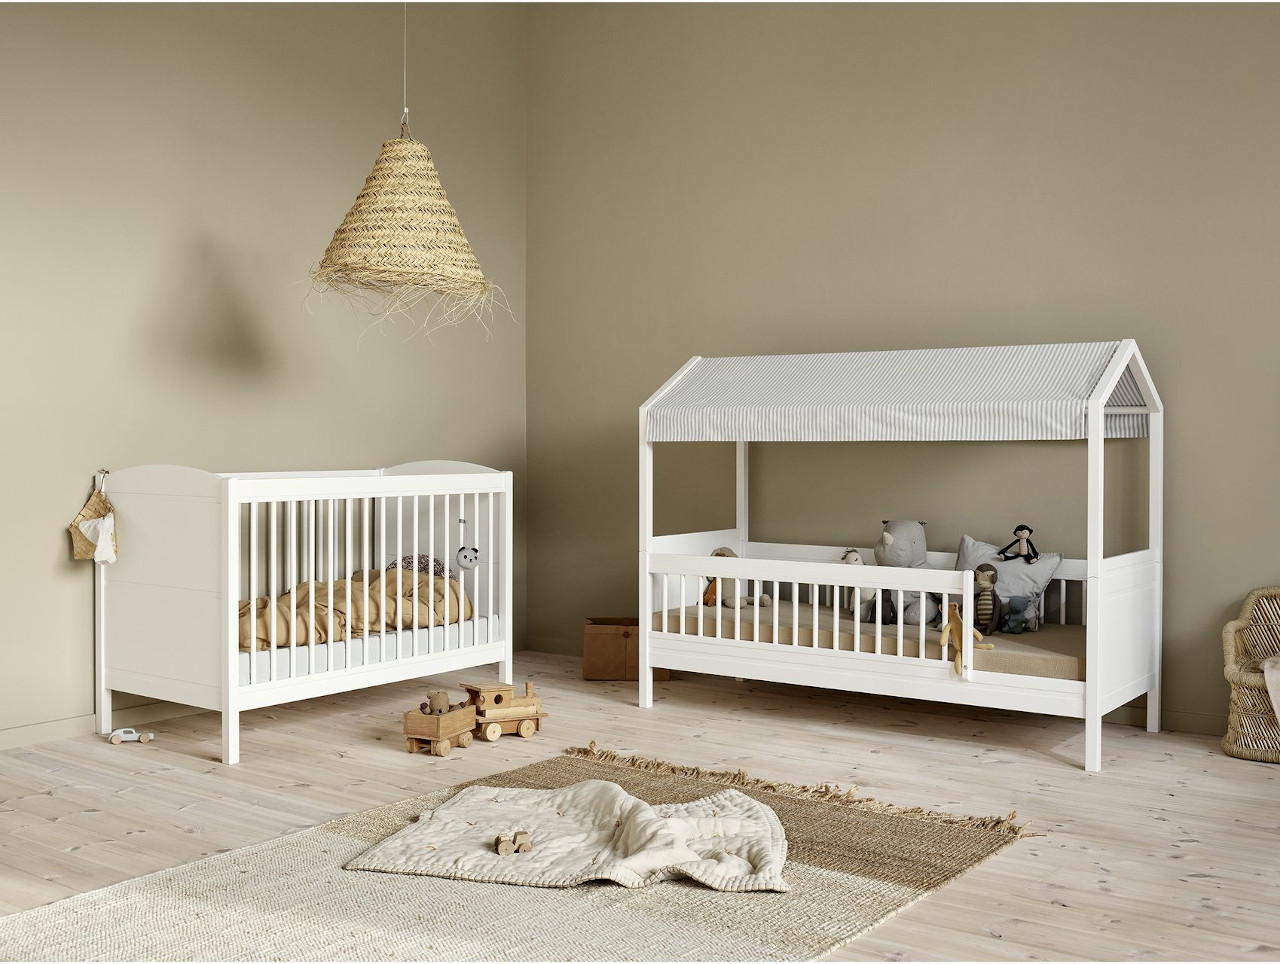 Babybett Seaside Lille Oliver Furniture Kaufen